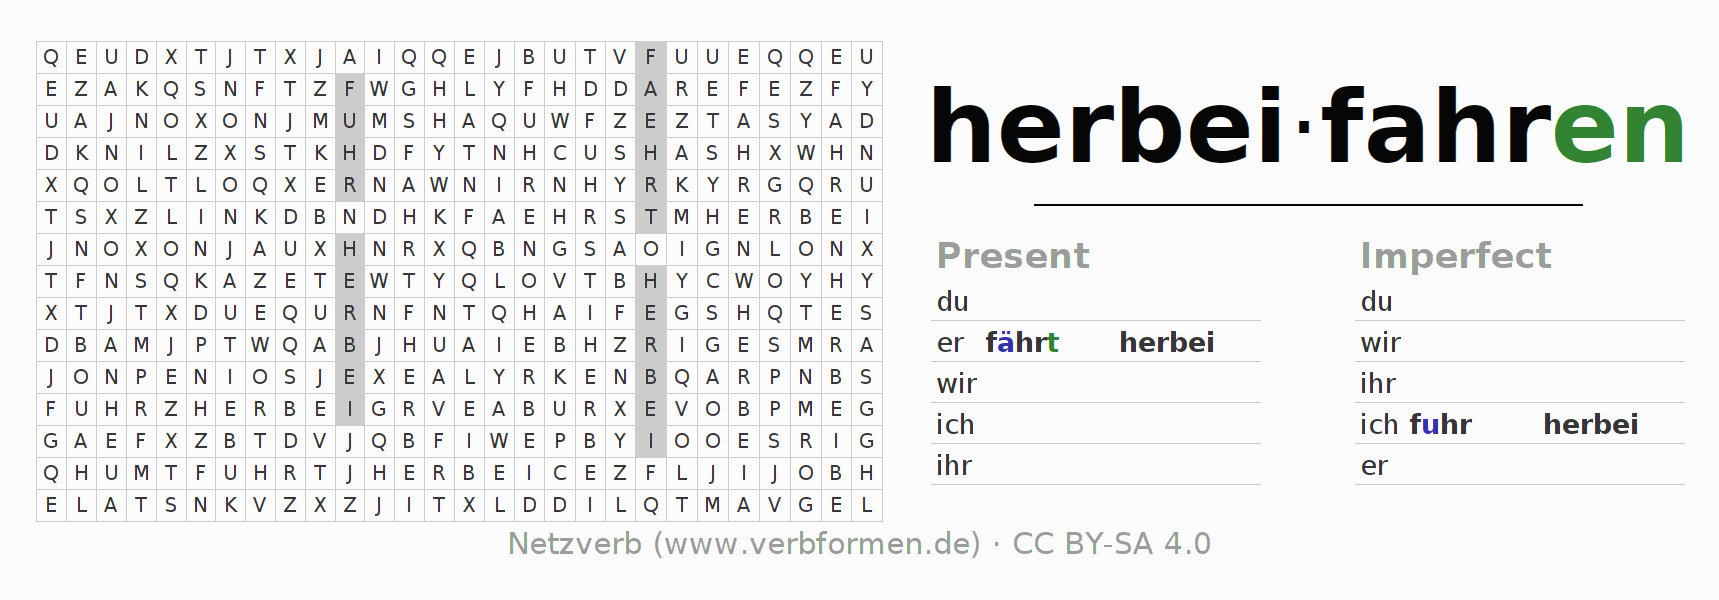 Word search puzzle for the conjugation of the verb herbeifahren